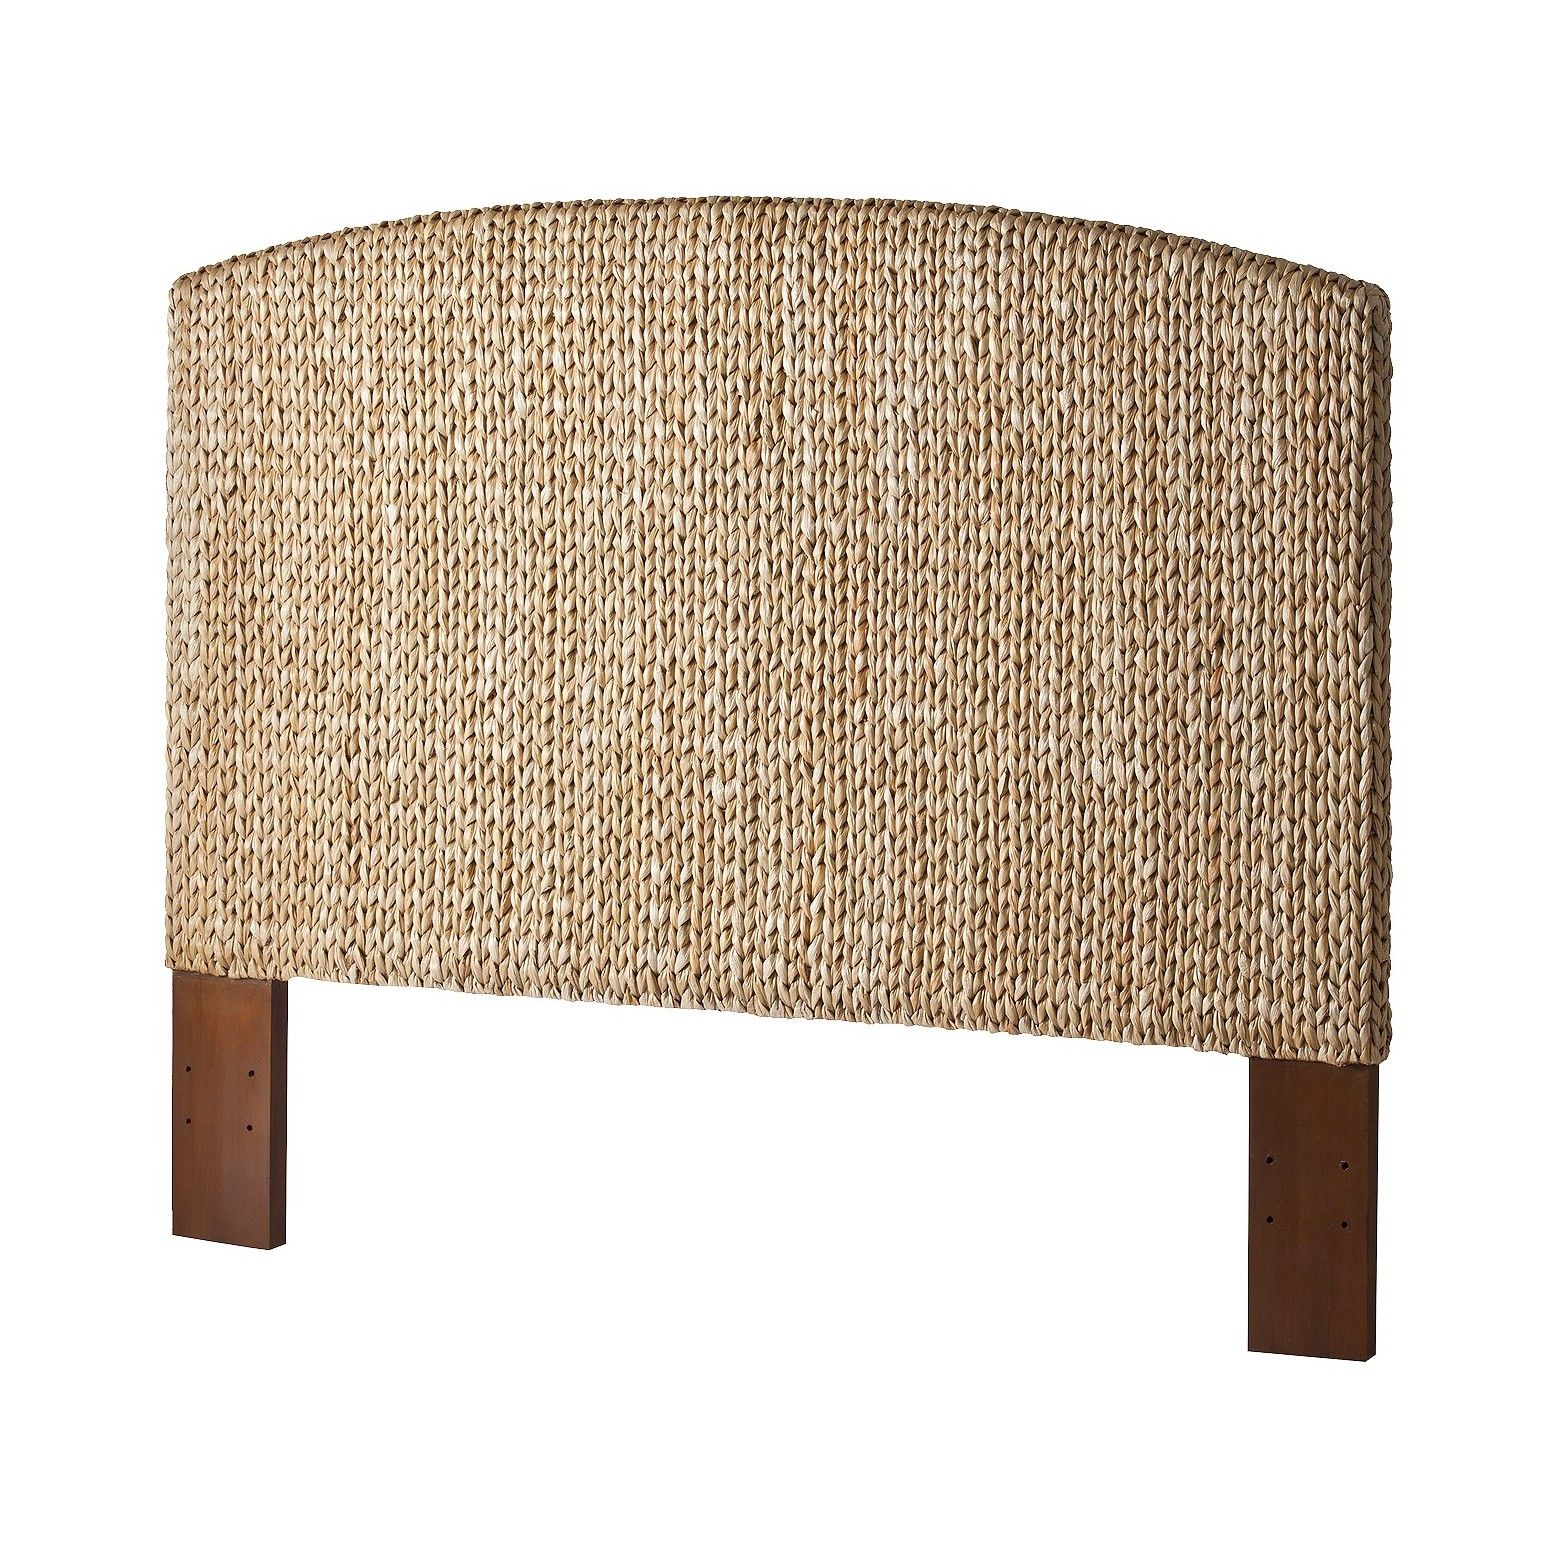 exquisite wicker bedroom furniture. $247 Target The Andres Headboard Has A Curved Design With Exquisite Detailing For An Attractive Look Wicker Bedroom Furniture